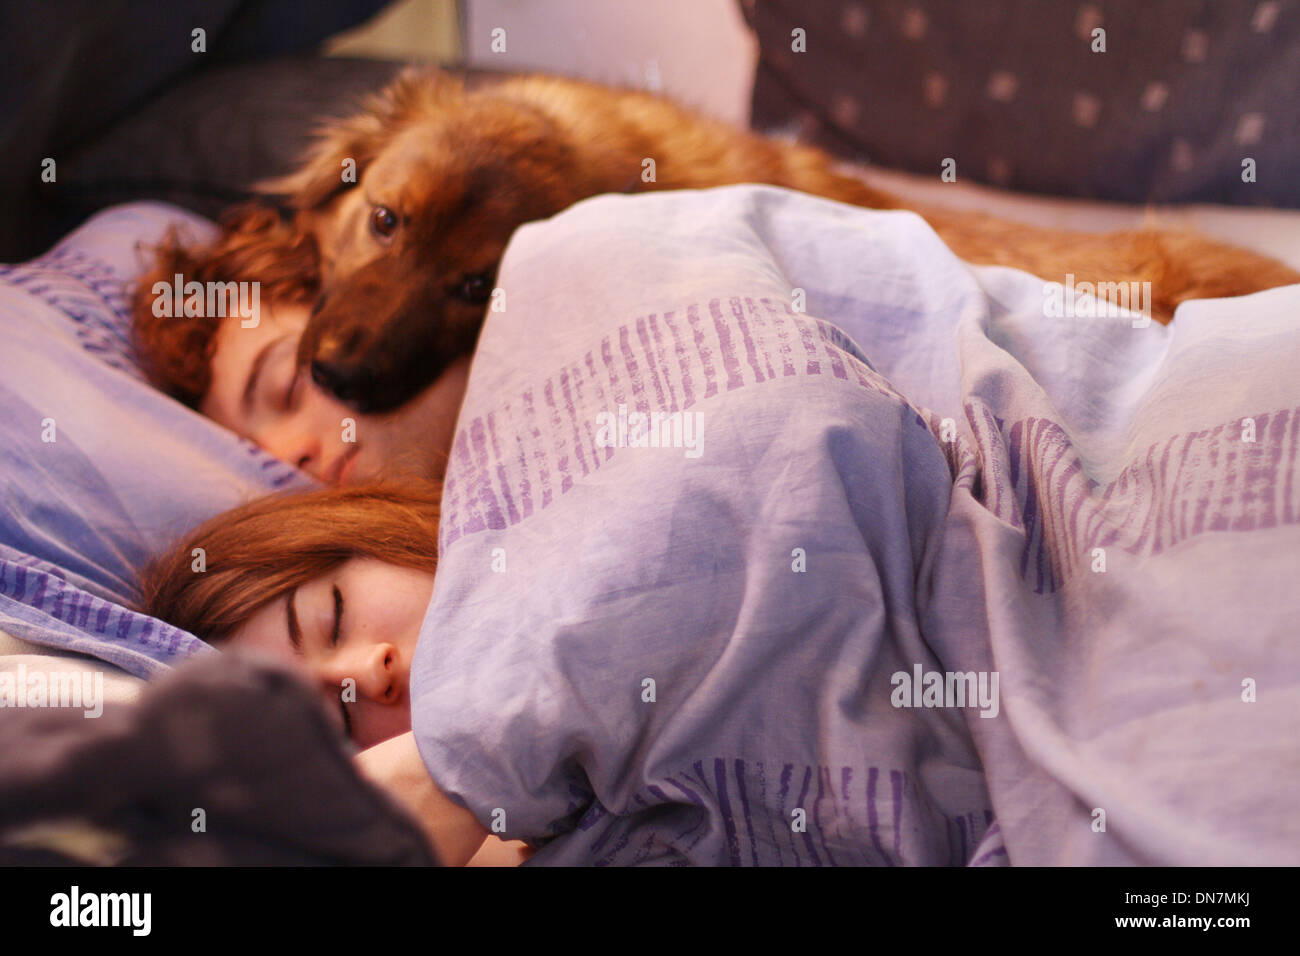 Loving couple in bed with dog - Stock Image